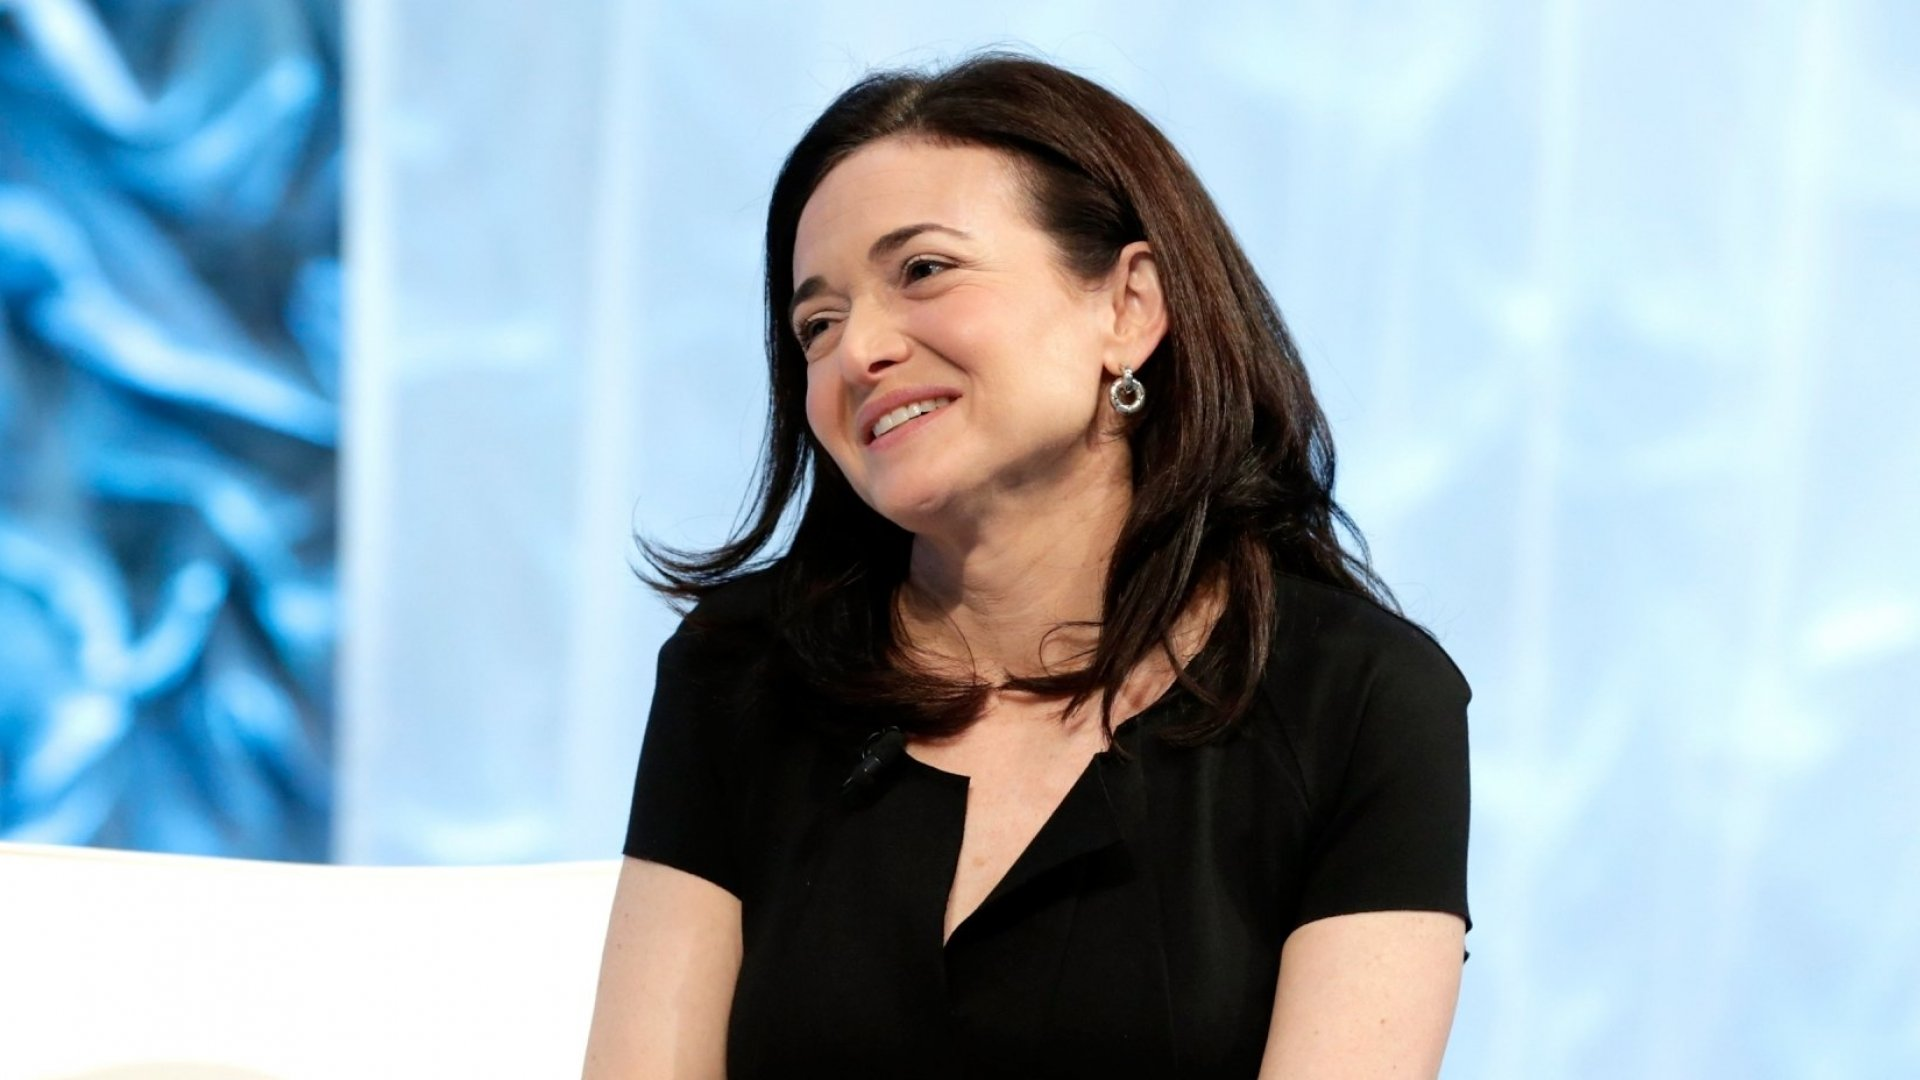 COO of Facebook Sheryl Sandberg speaks at the Watermark Conference for Women.